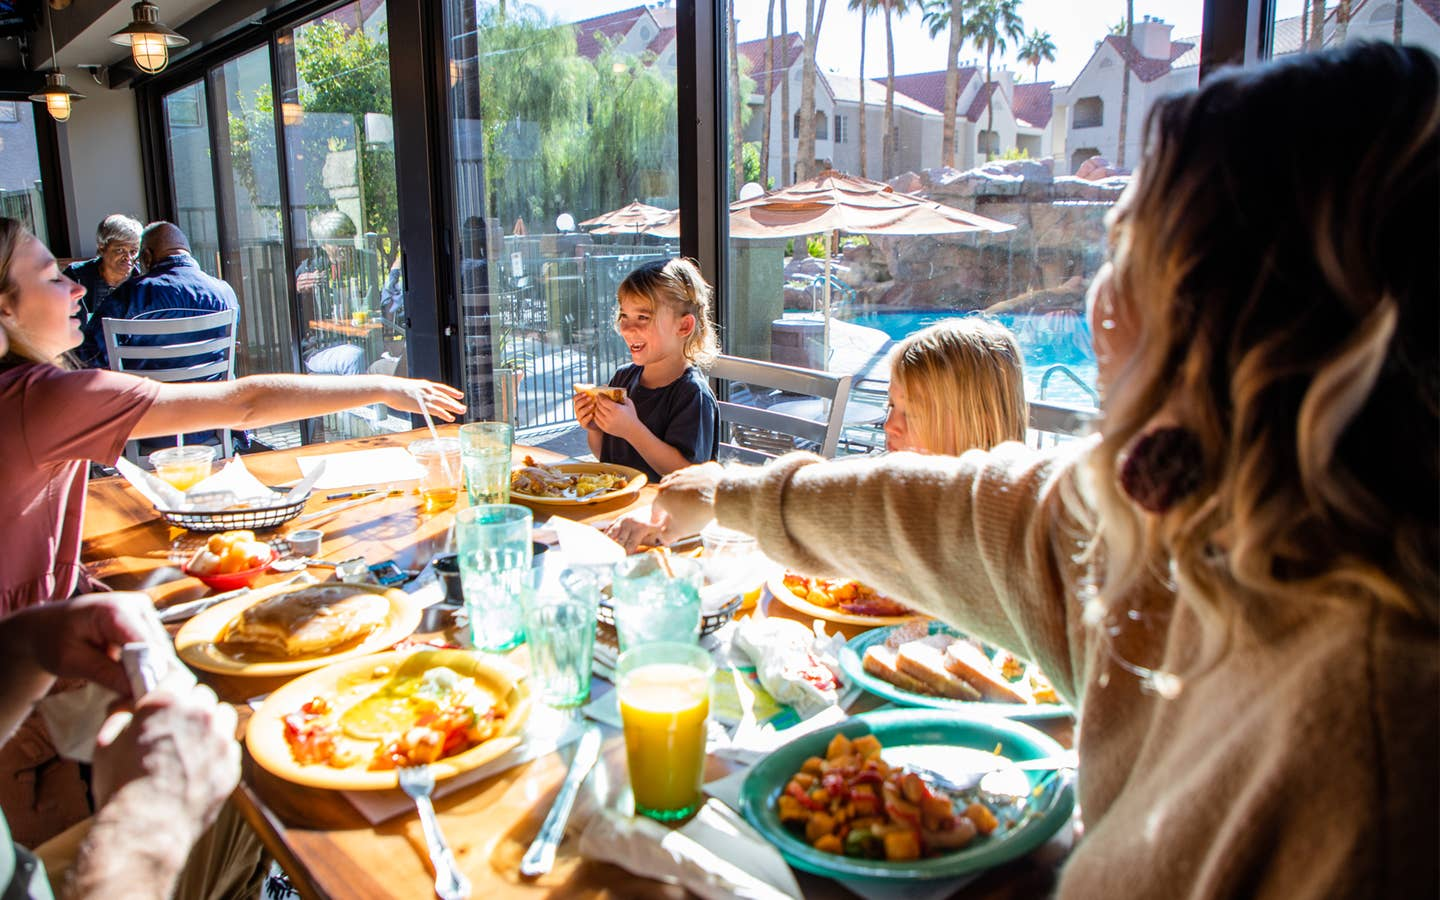 Family eating breakfast at Gold Mine Bar & Grill with pool view at Desert Club Resort in Las Vegas, Nevada.